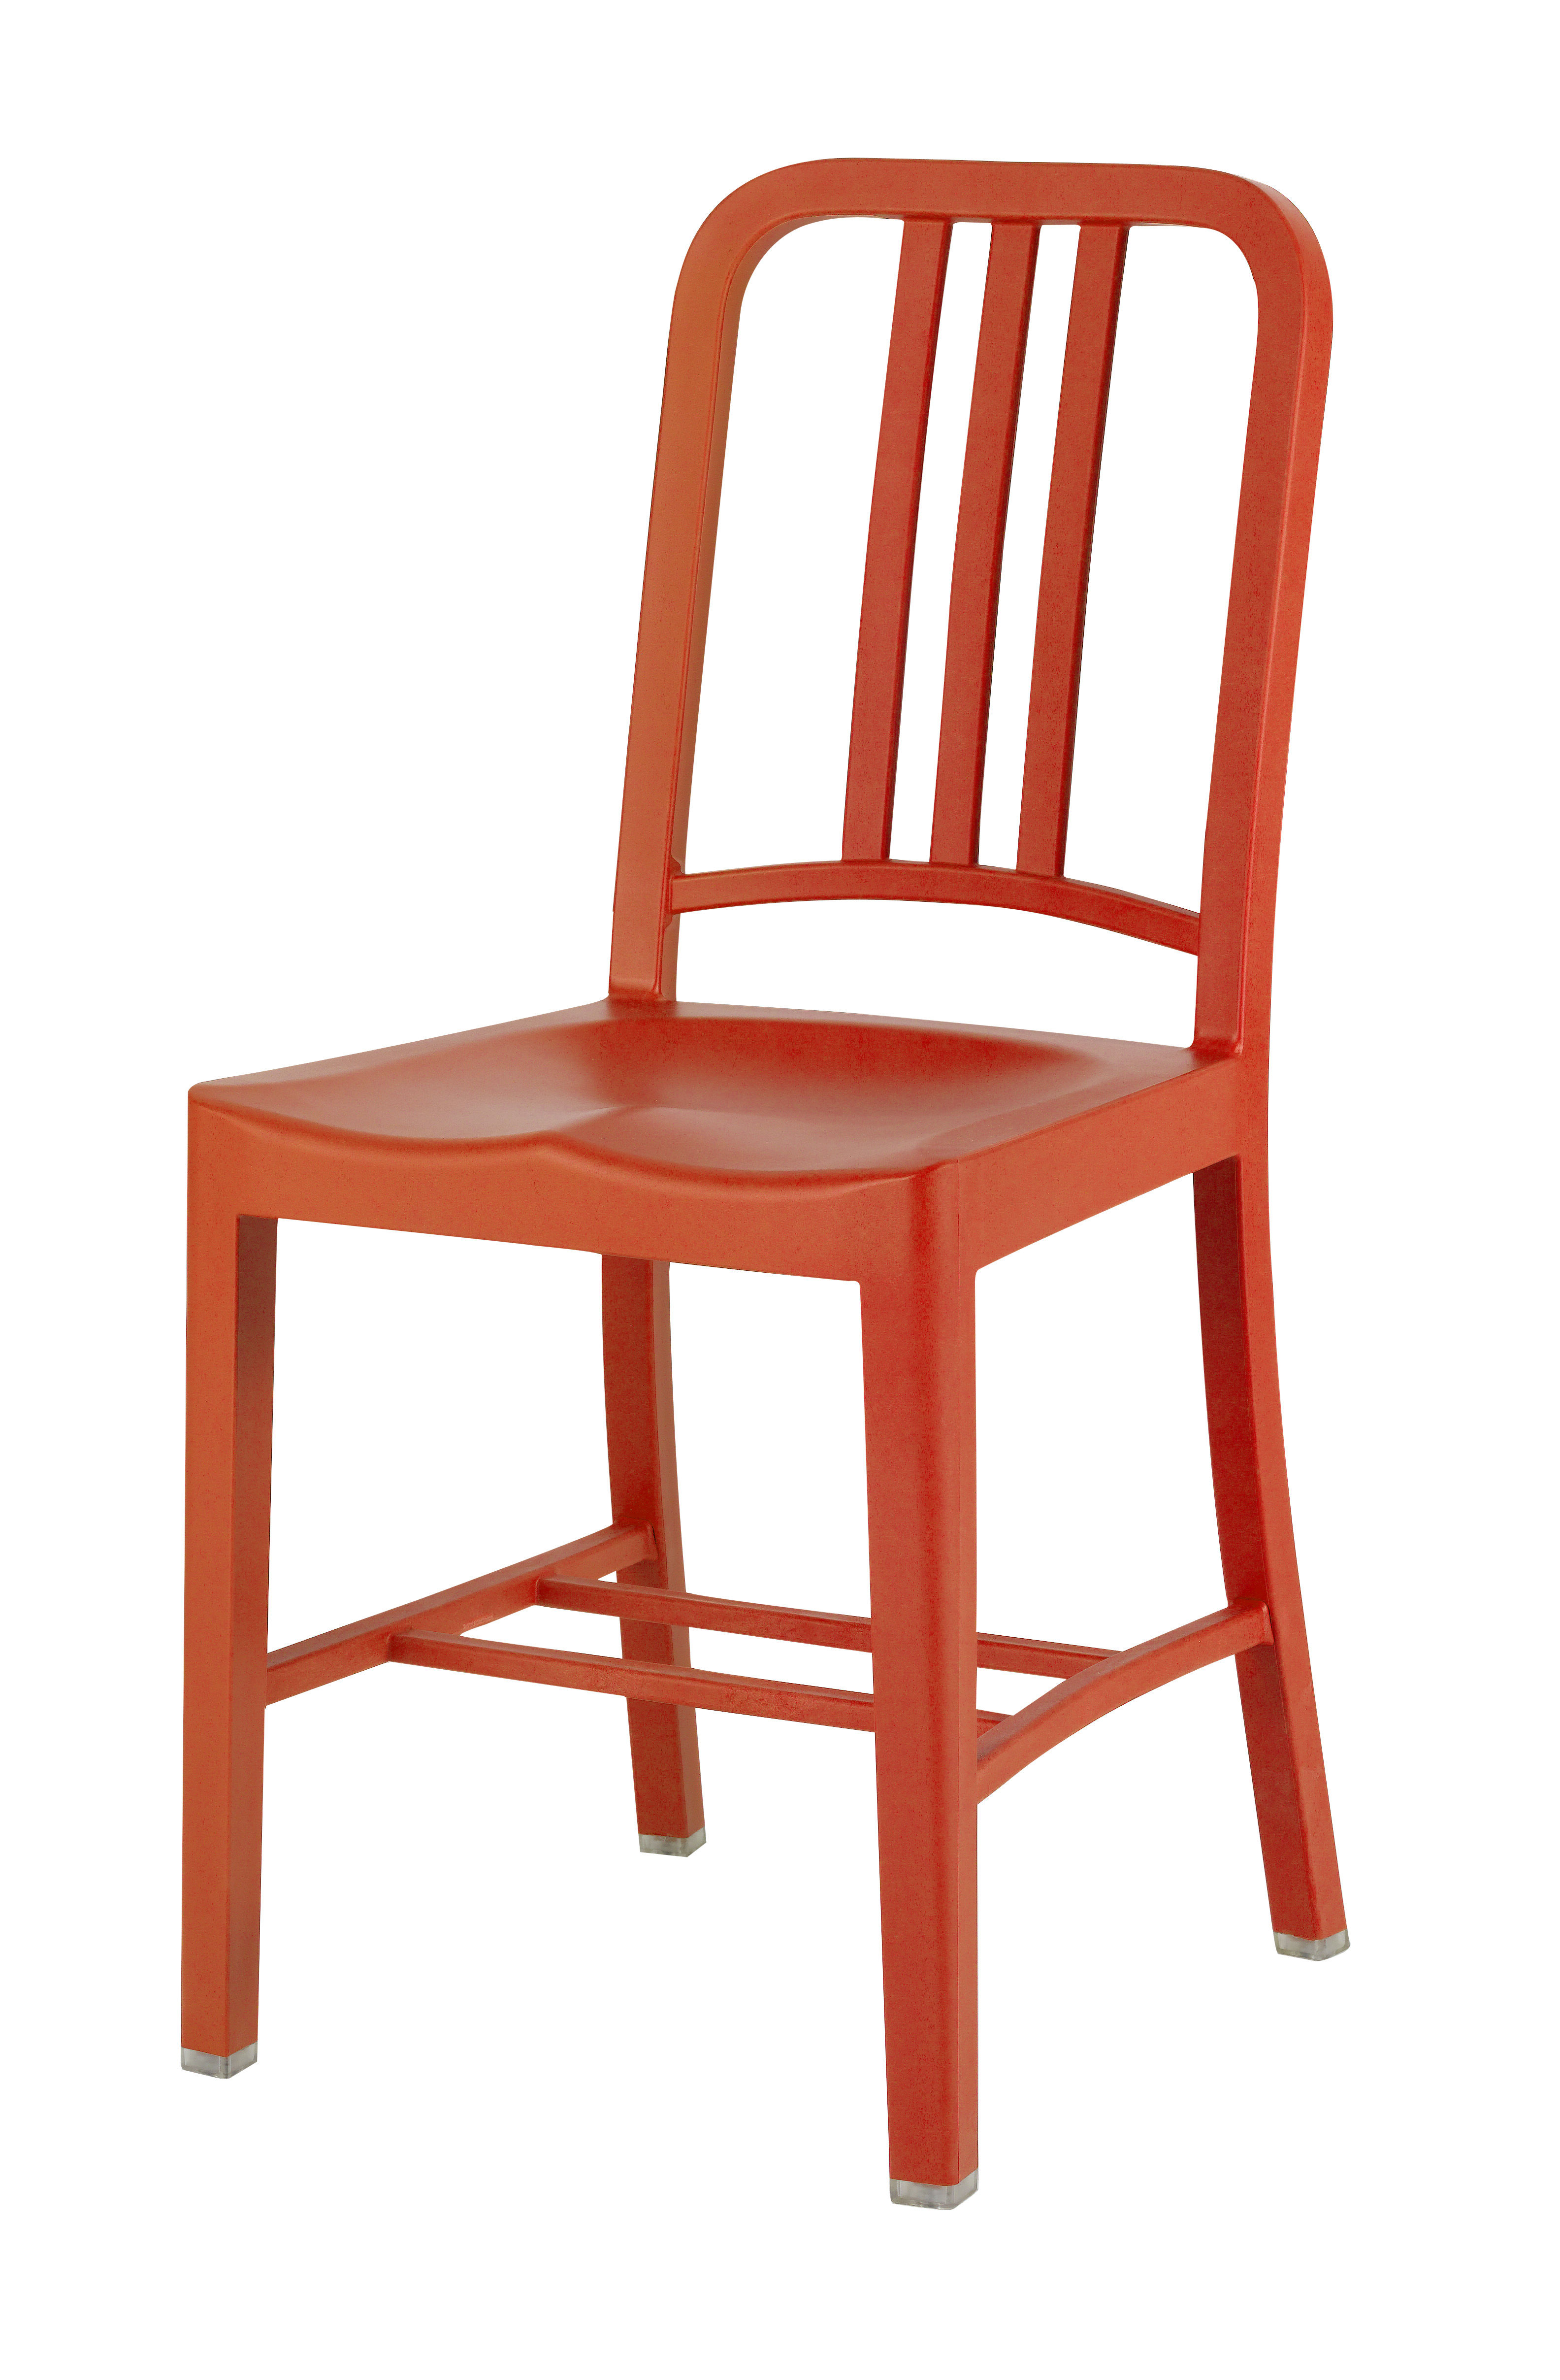 Furniture - Chairs - 111 Navy chair Chair - Recycled plastic by Emeco - Persimmon orange - Fibreglass, PET